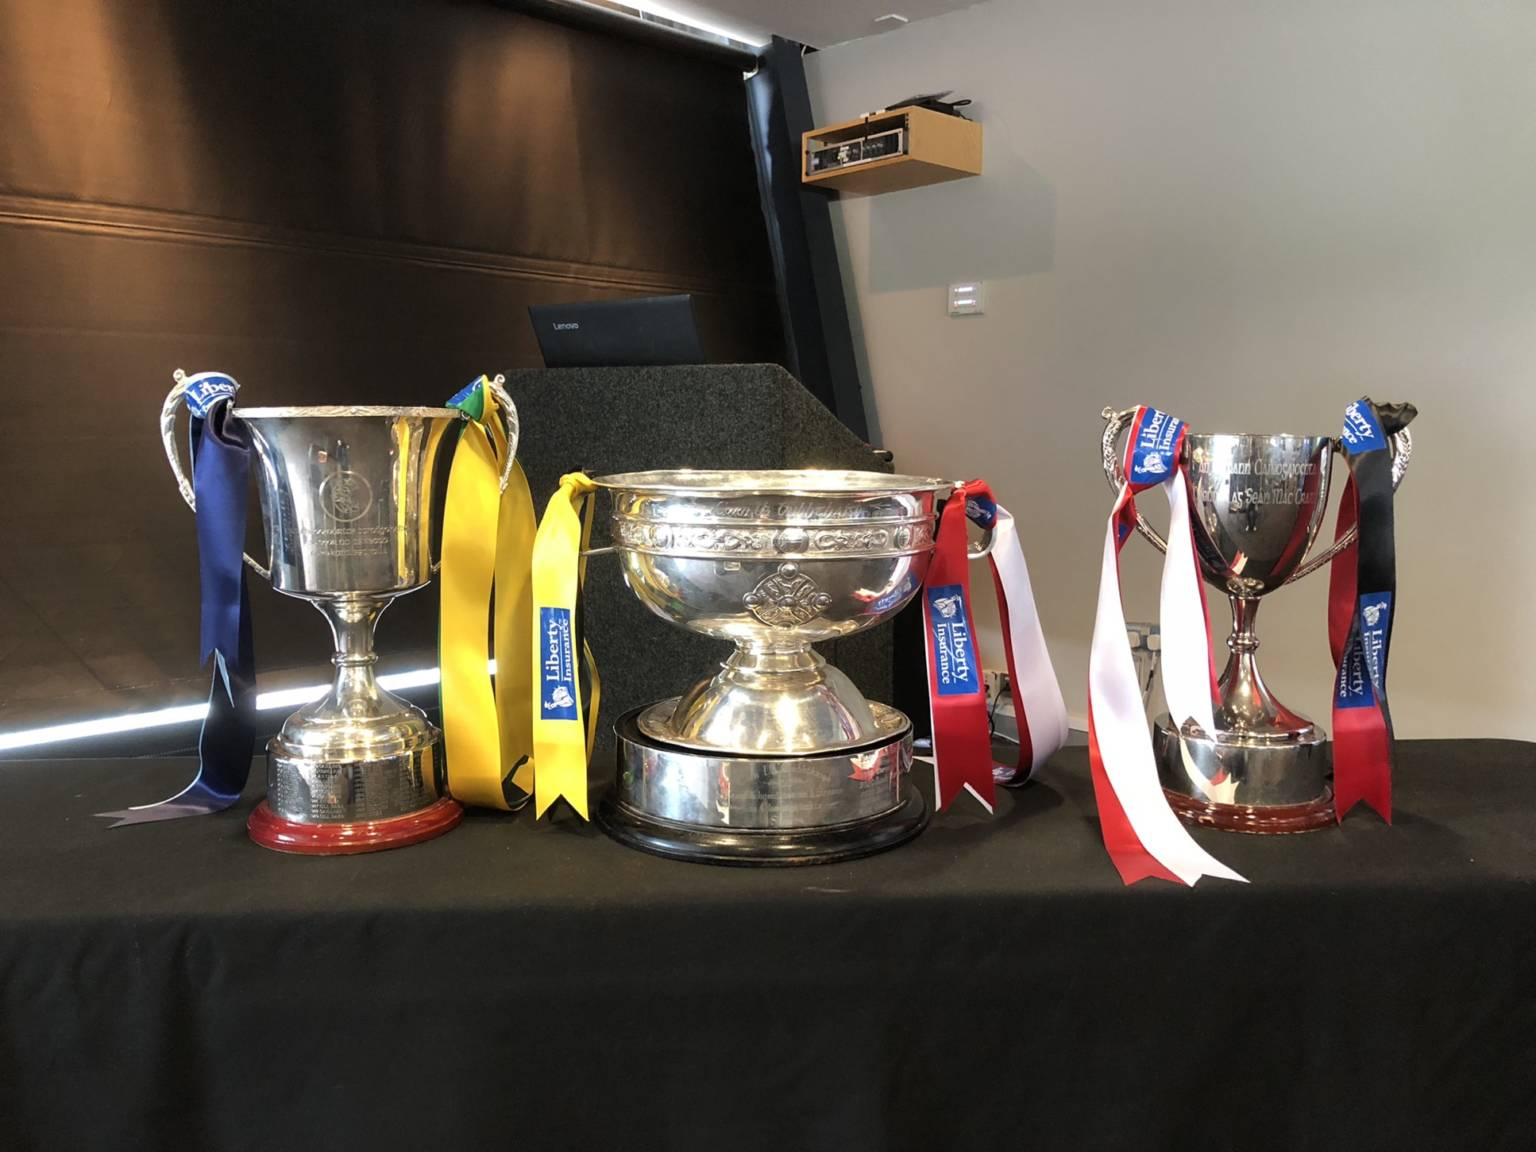 The premier junior, senior and intermediate camogie All Ireland cups, the Camogie Association intend to complete all competitions planned for 2020 once the Covid 19 restrictions are lifted.